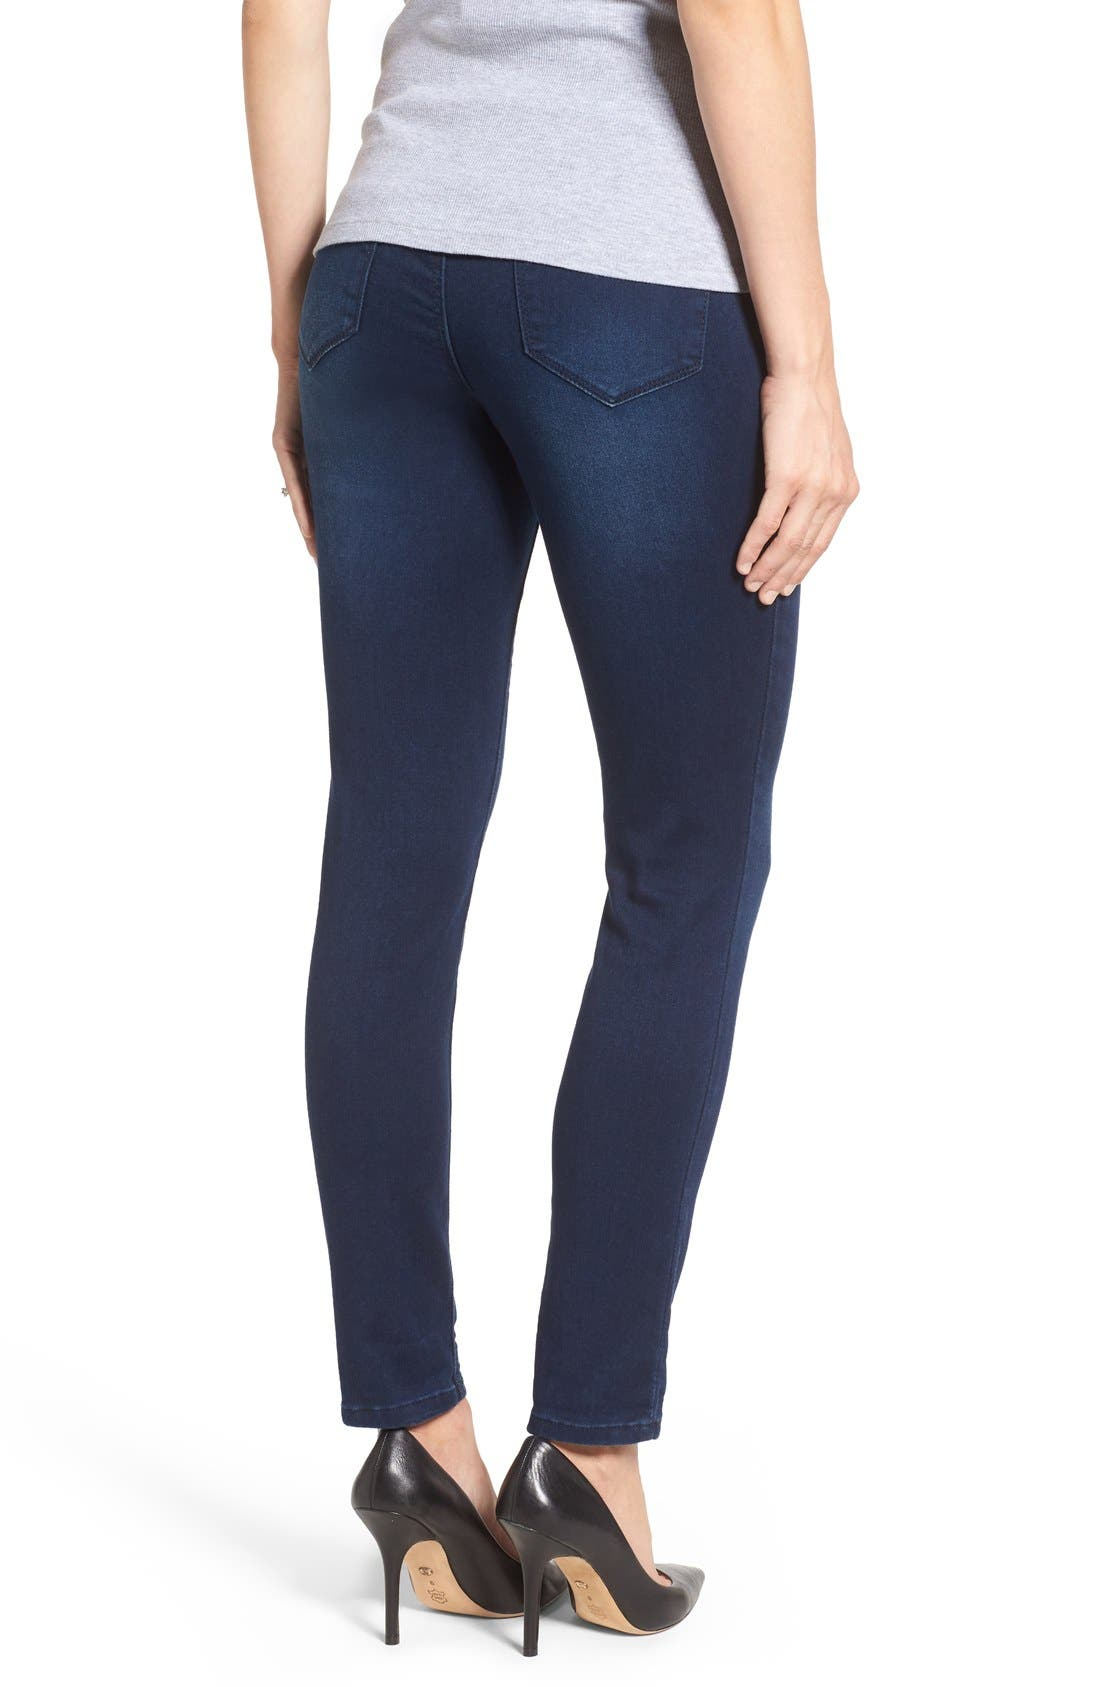 'Ankle Biter' Over the Bump Rolled Cuff Maternity Skinny Jeans,                             Alternate thumbnail 2, color,                             Lennox